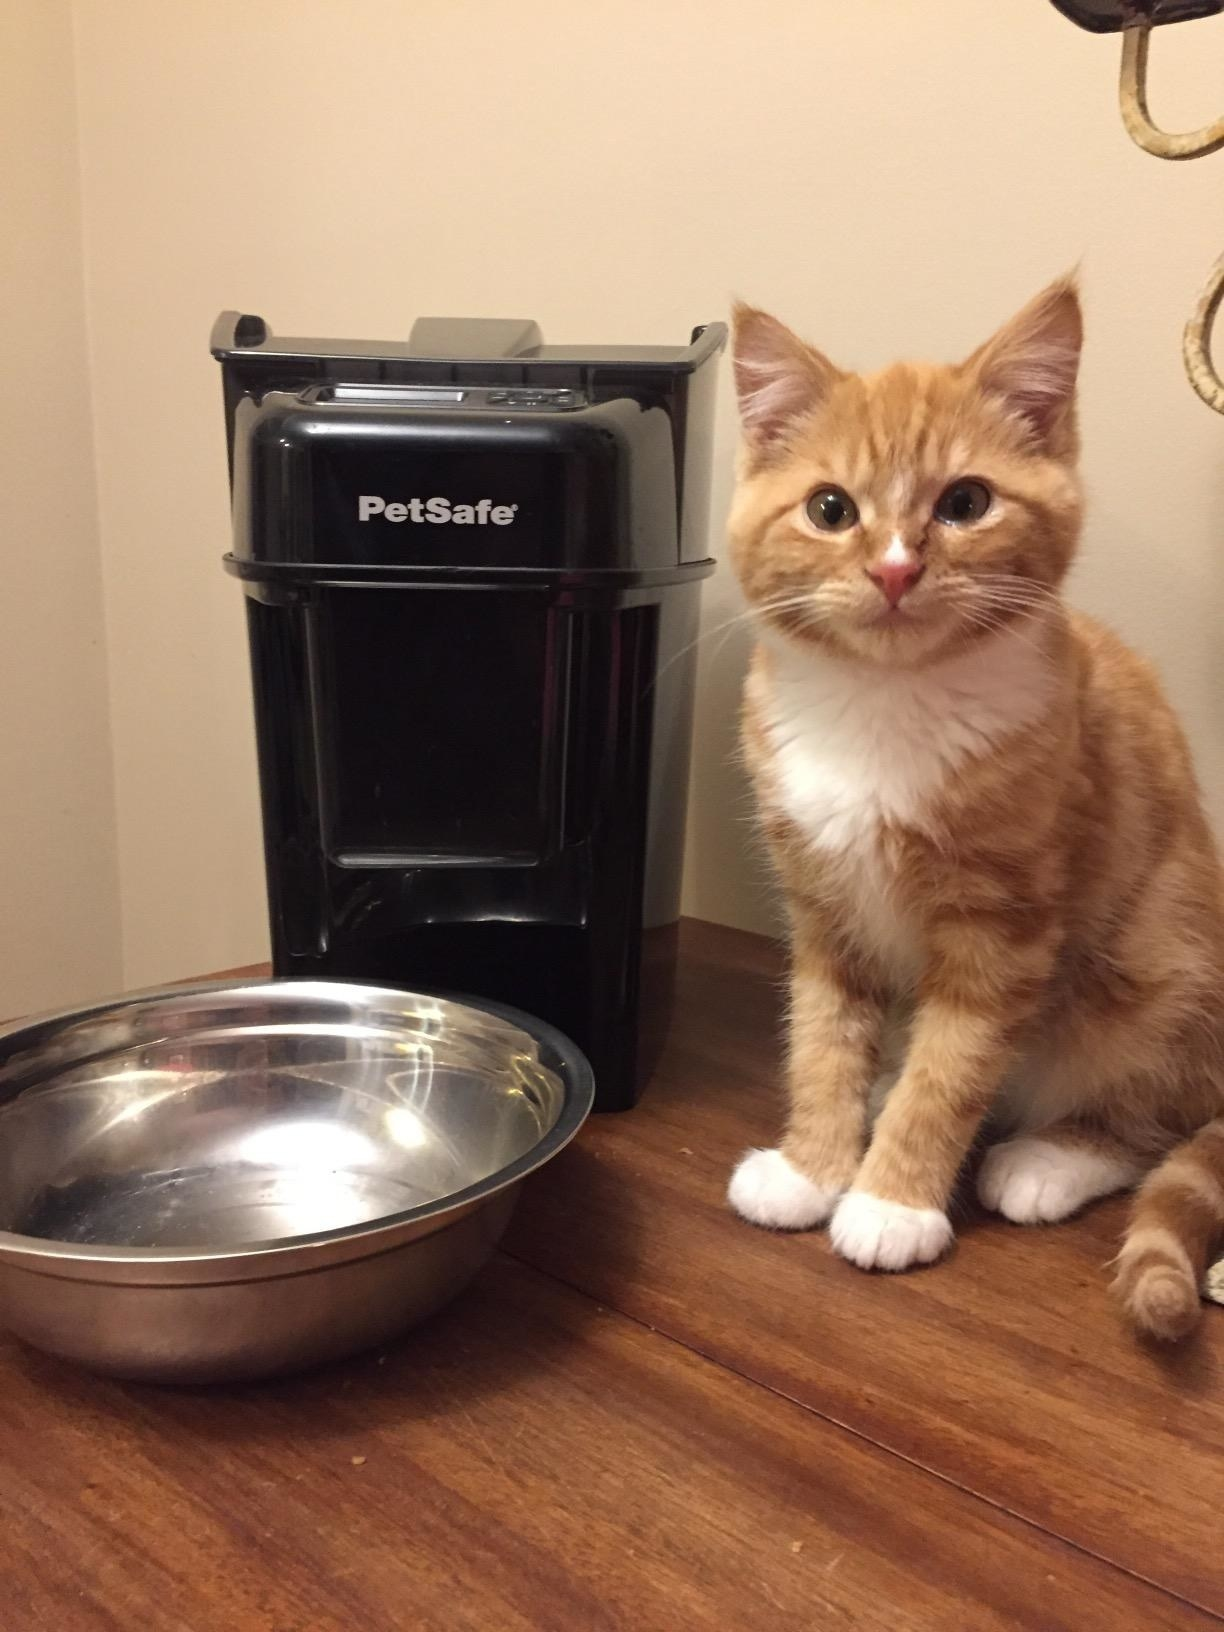 reviewer photo showing their cat next to their automatic feeder